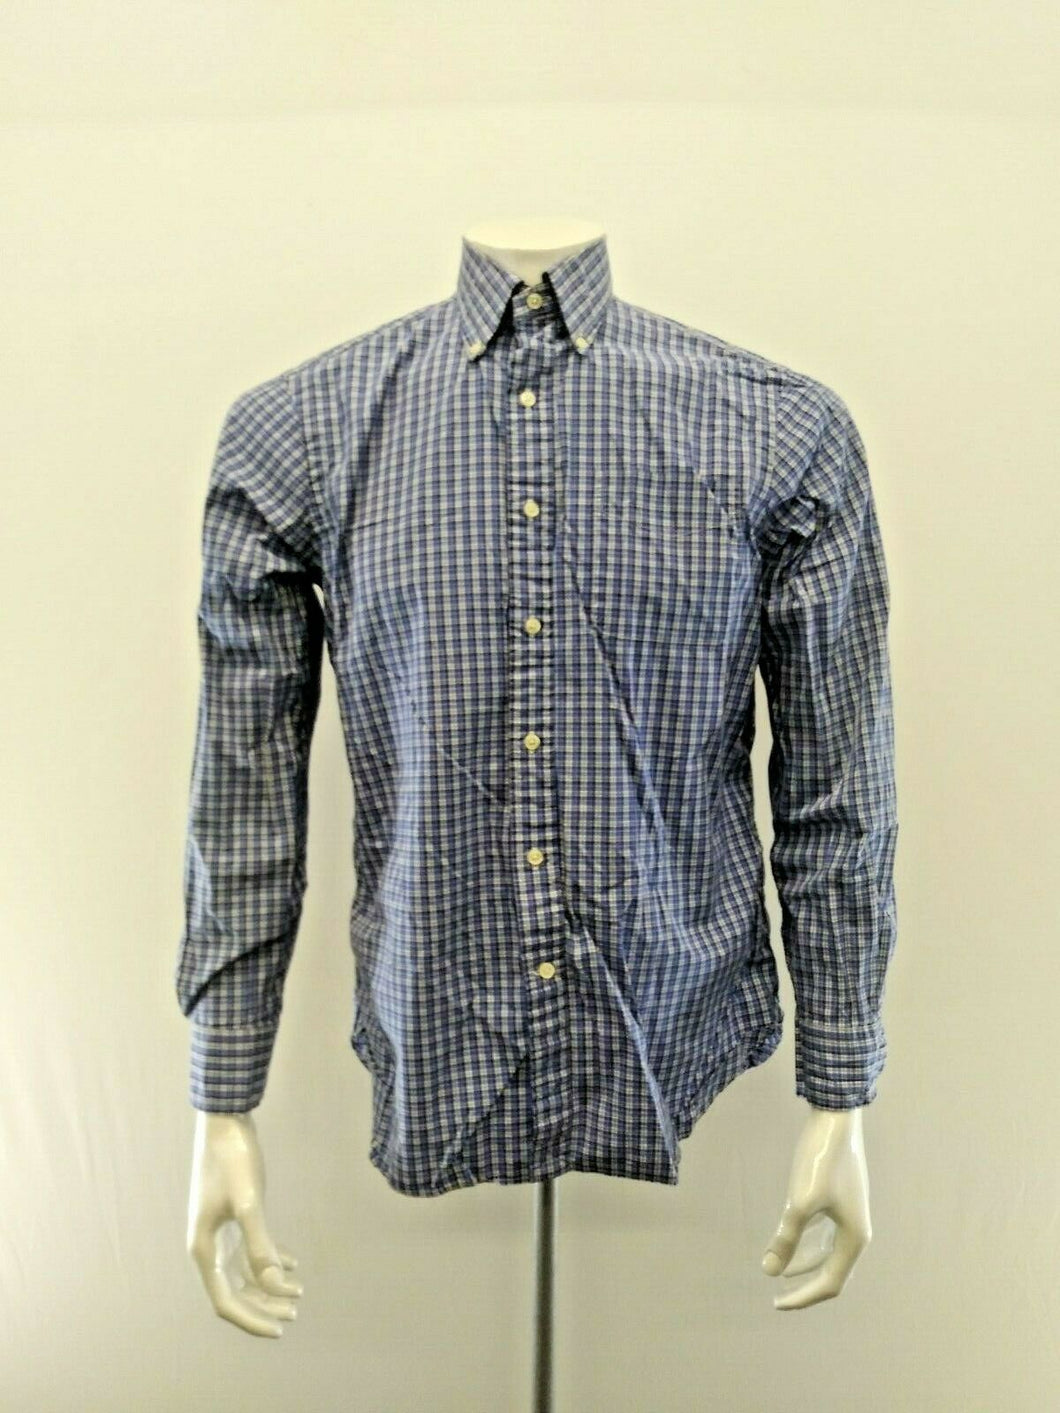 Ralph Lauren Shirt Men's Medium Poplin Blue Plaid Long Sleeve Button Down